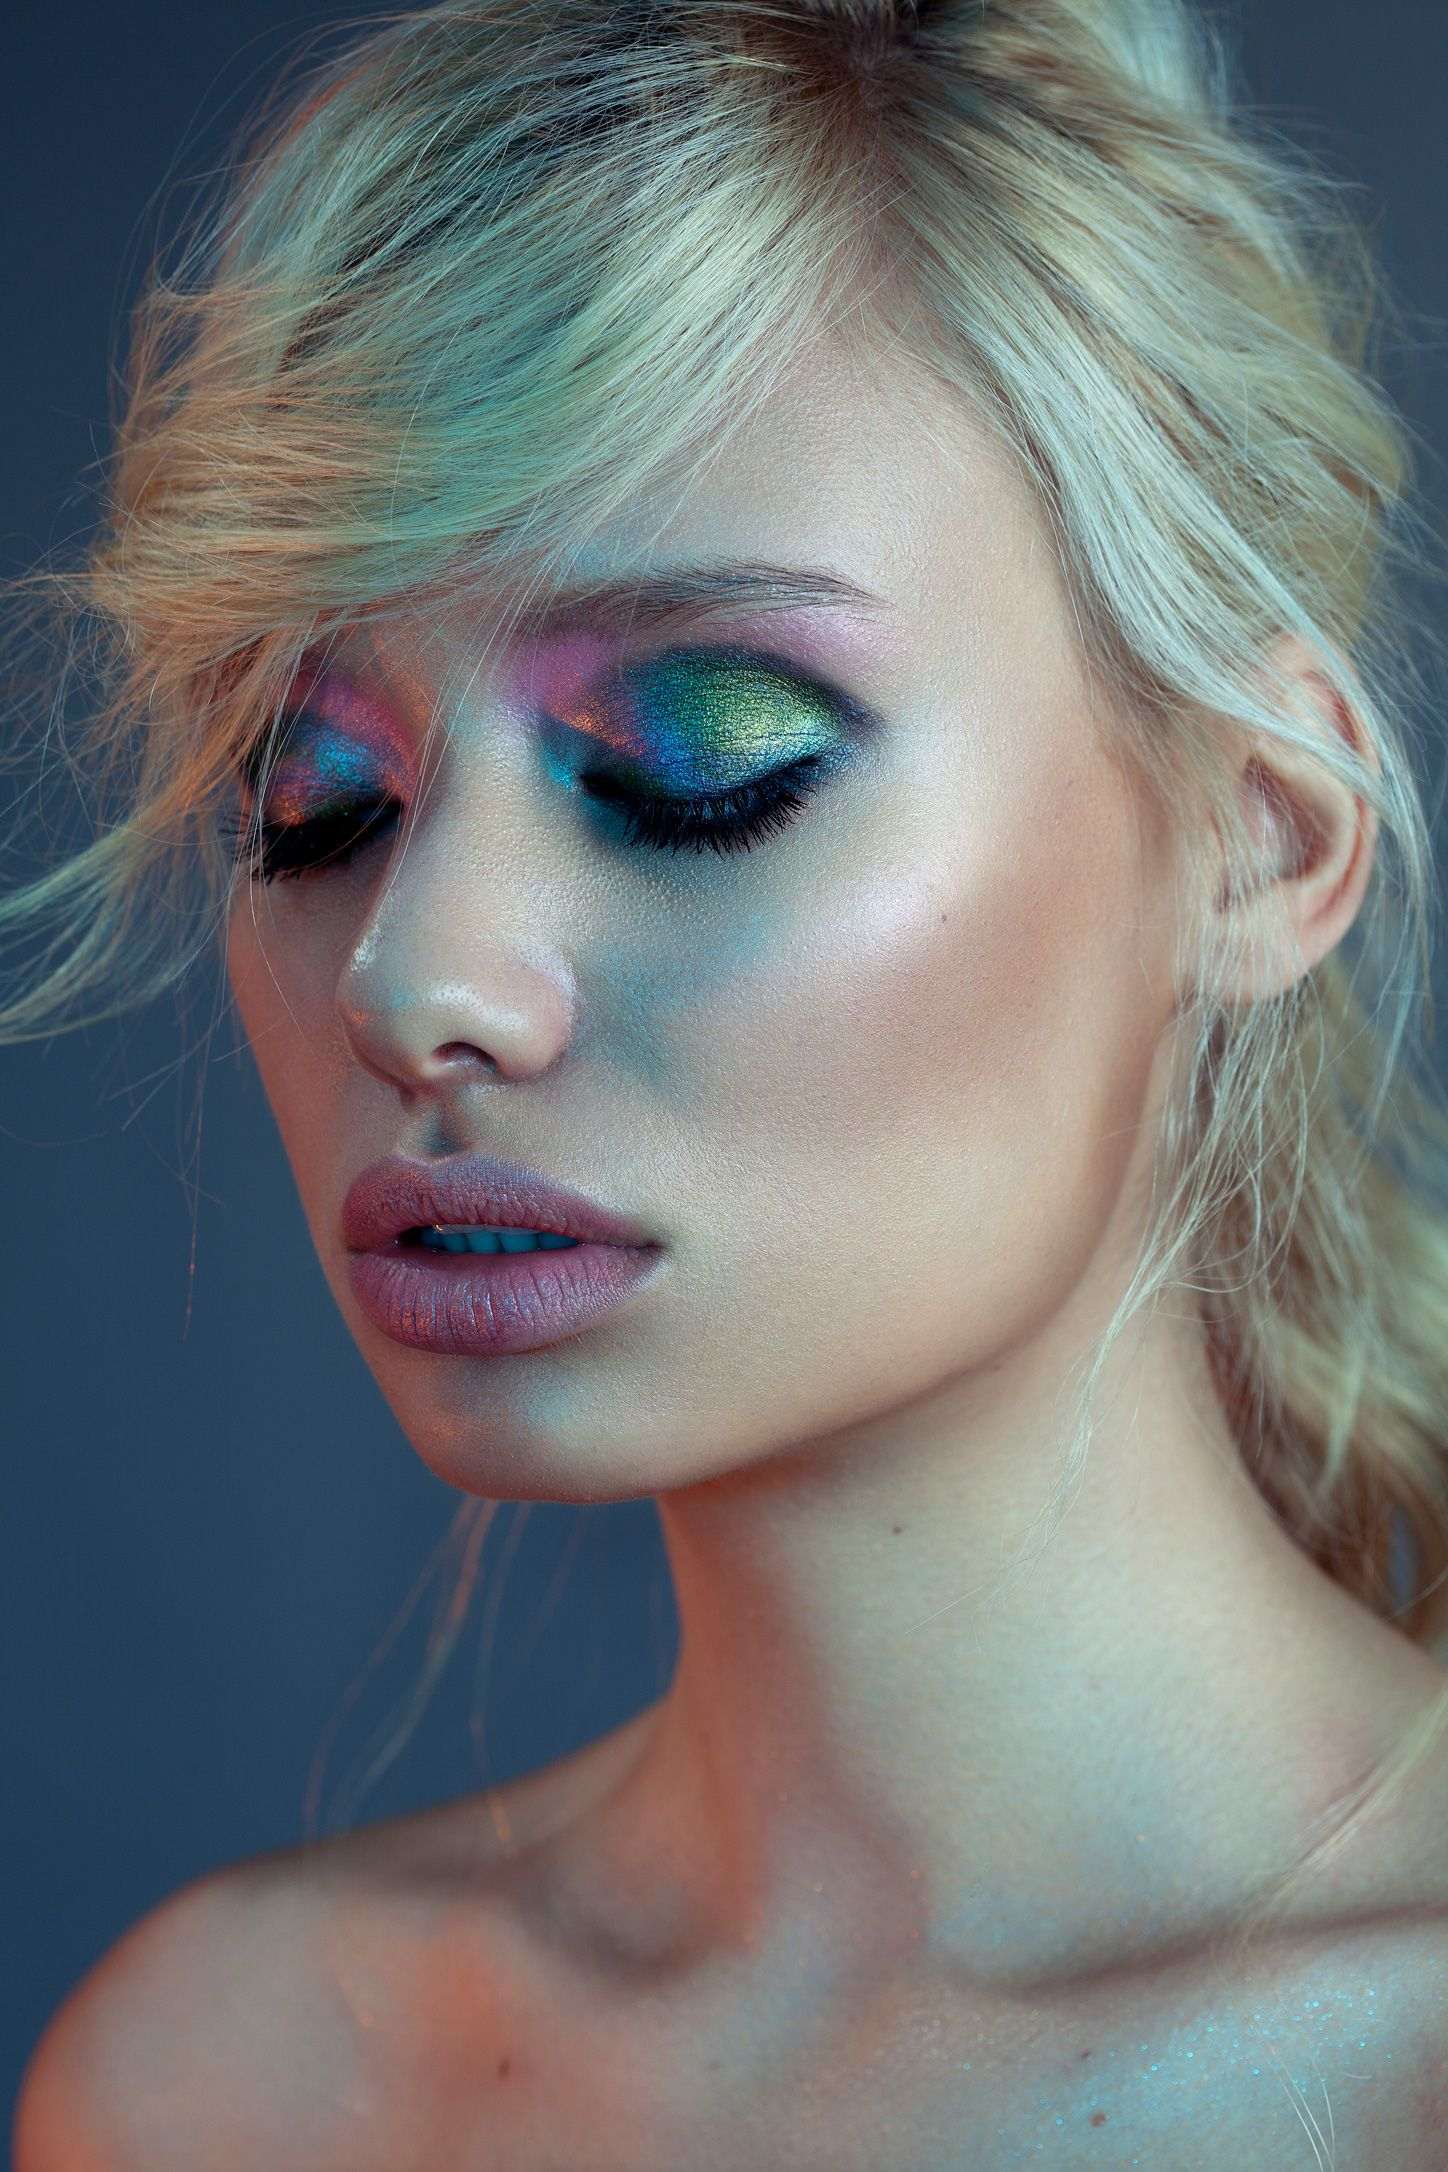 Kory Towska by Rossella Vanon in Chimera for Factice Magazine Exclusive May 2016